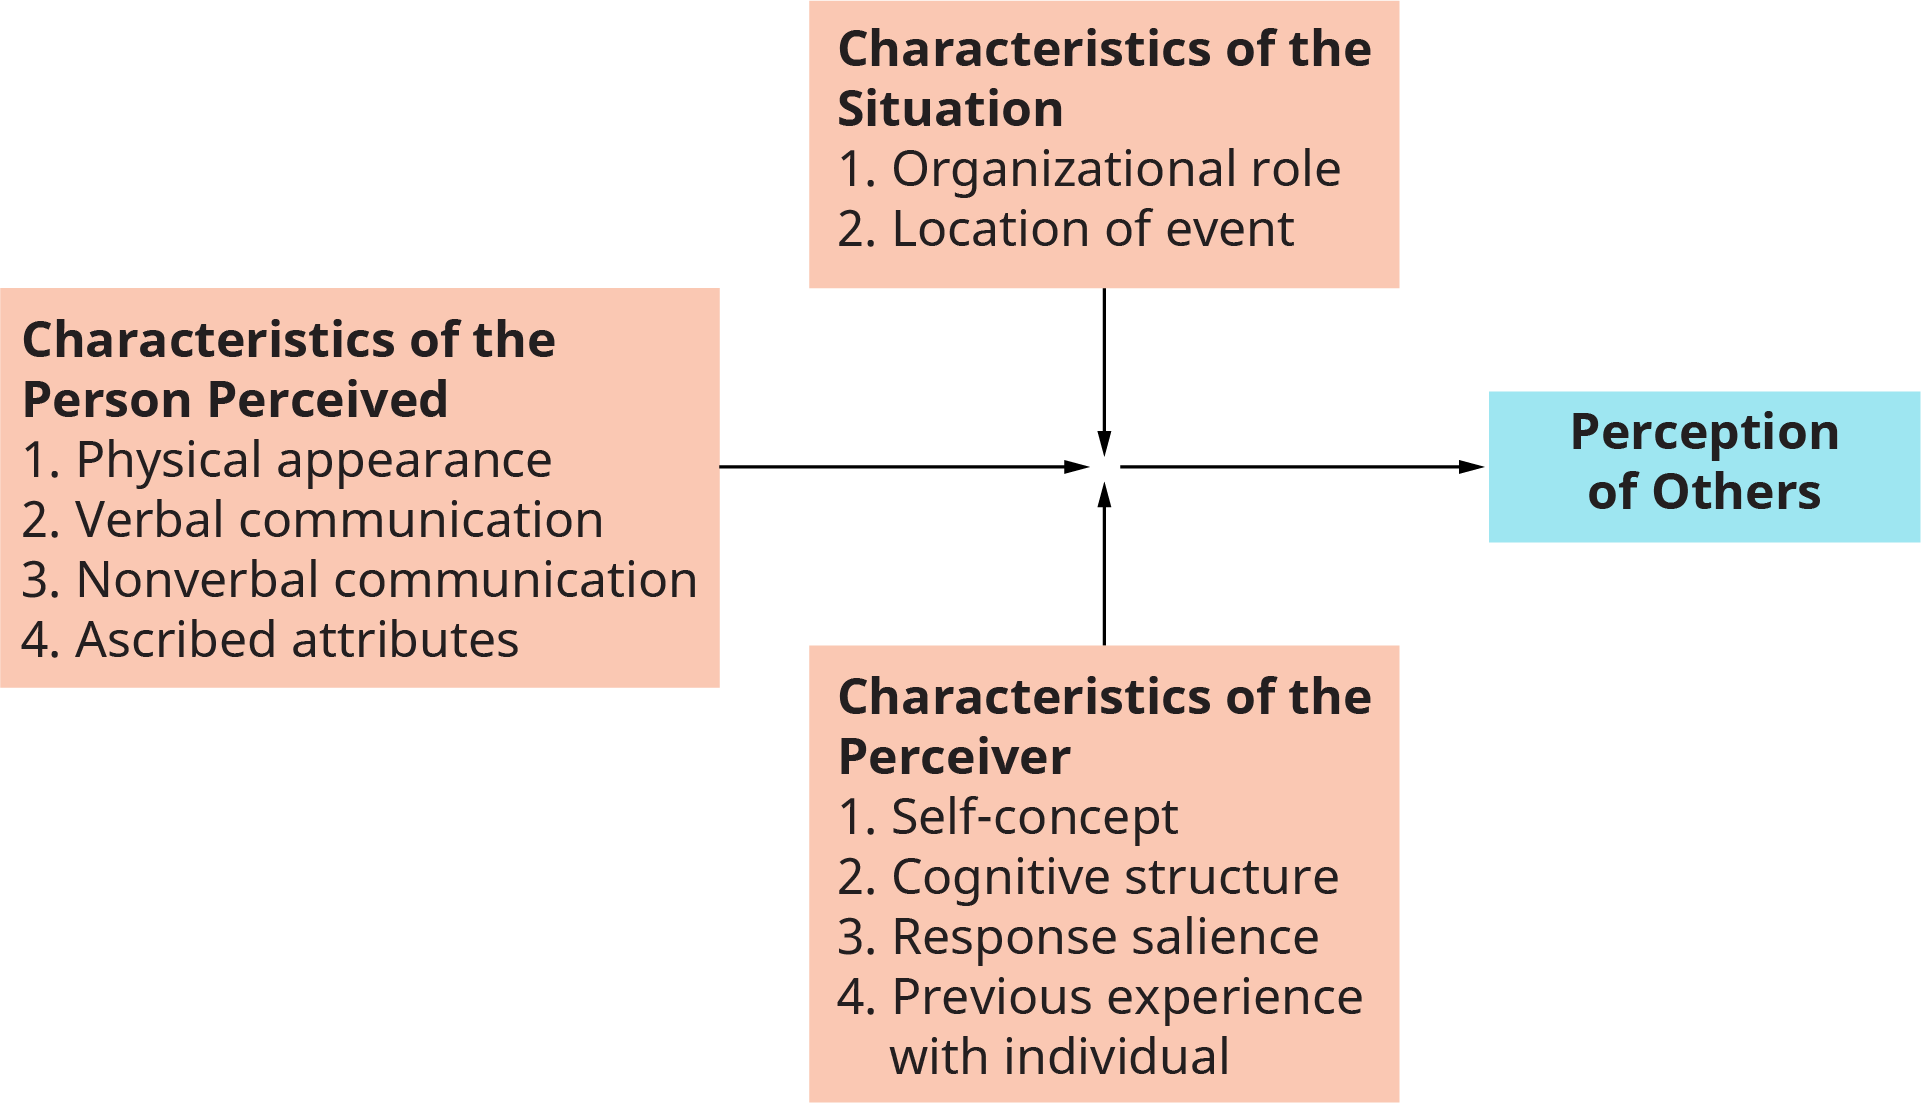 An illustration shows the major influences on social perception in organizations.